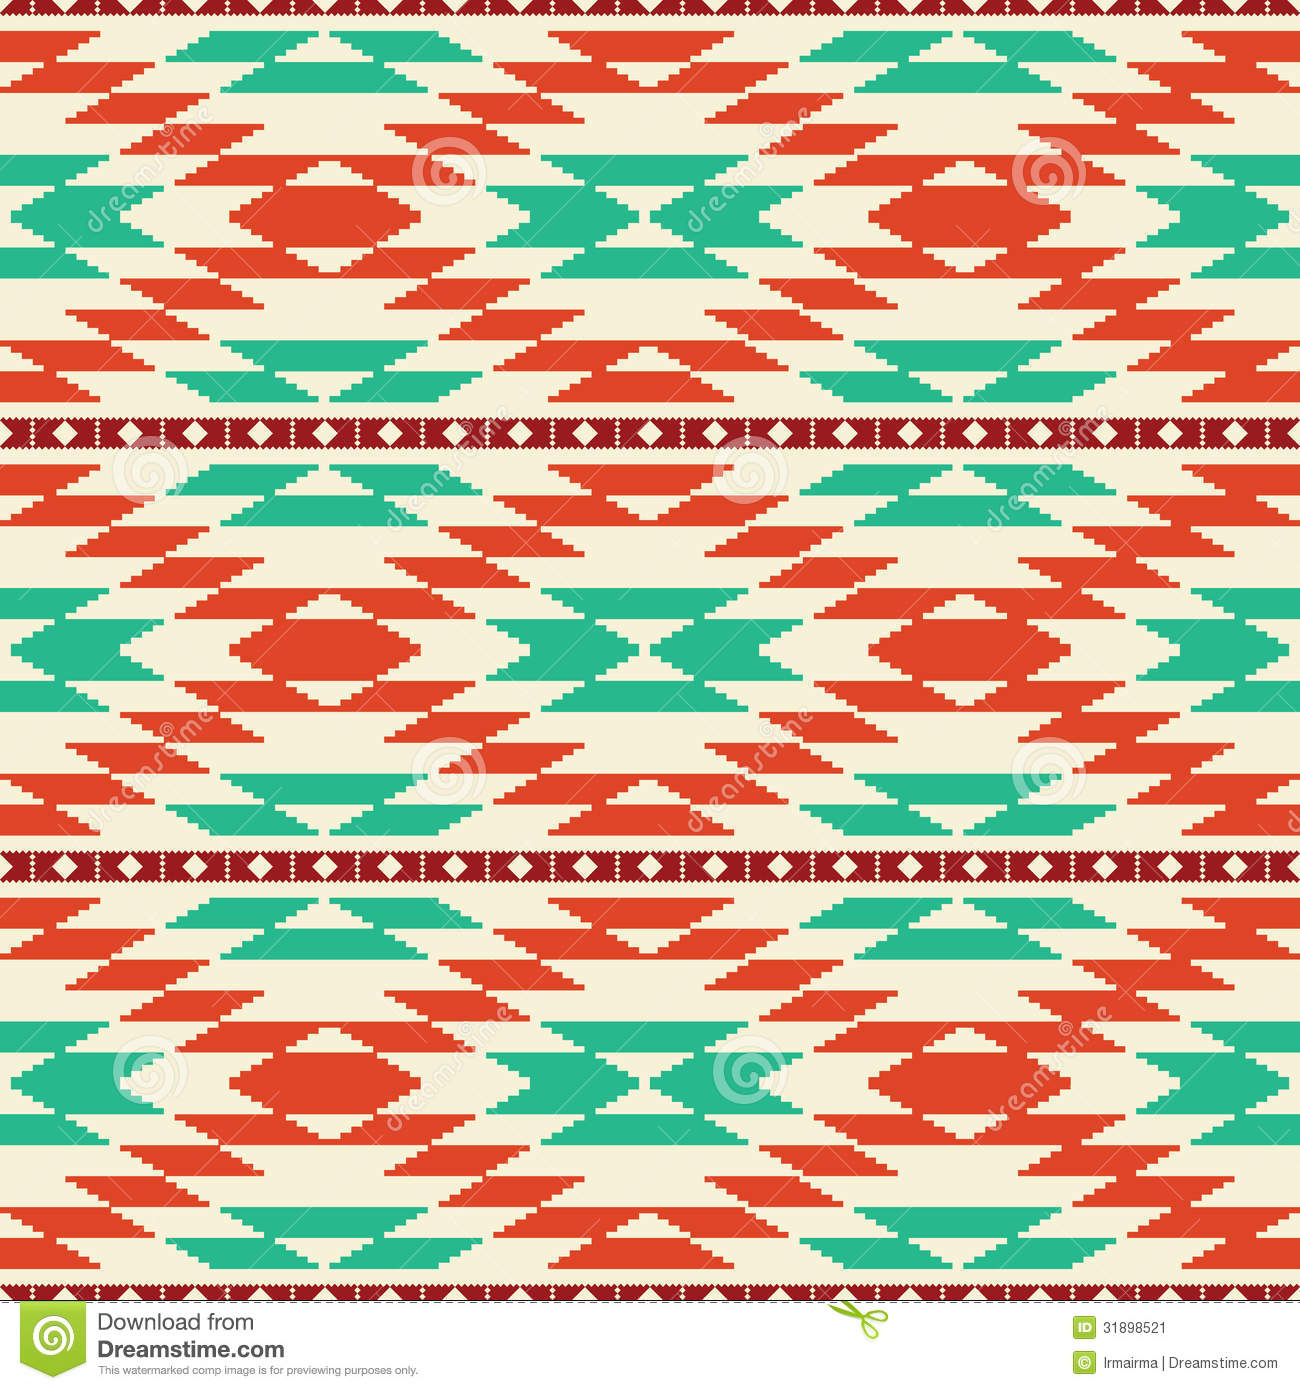 Native American Tribal Patterns Background